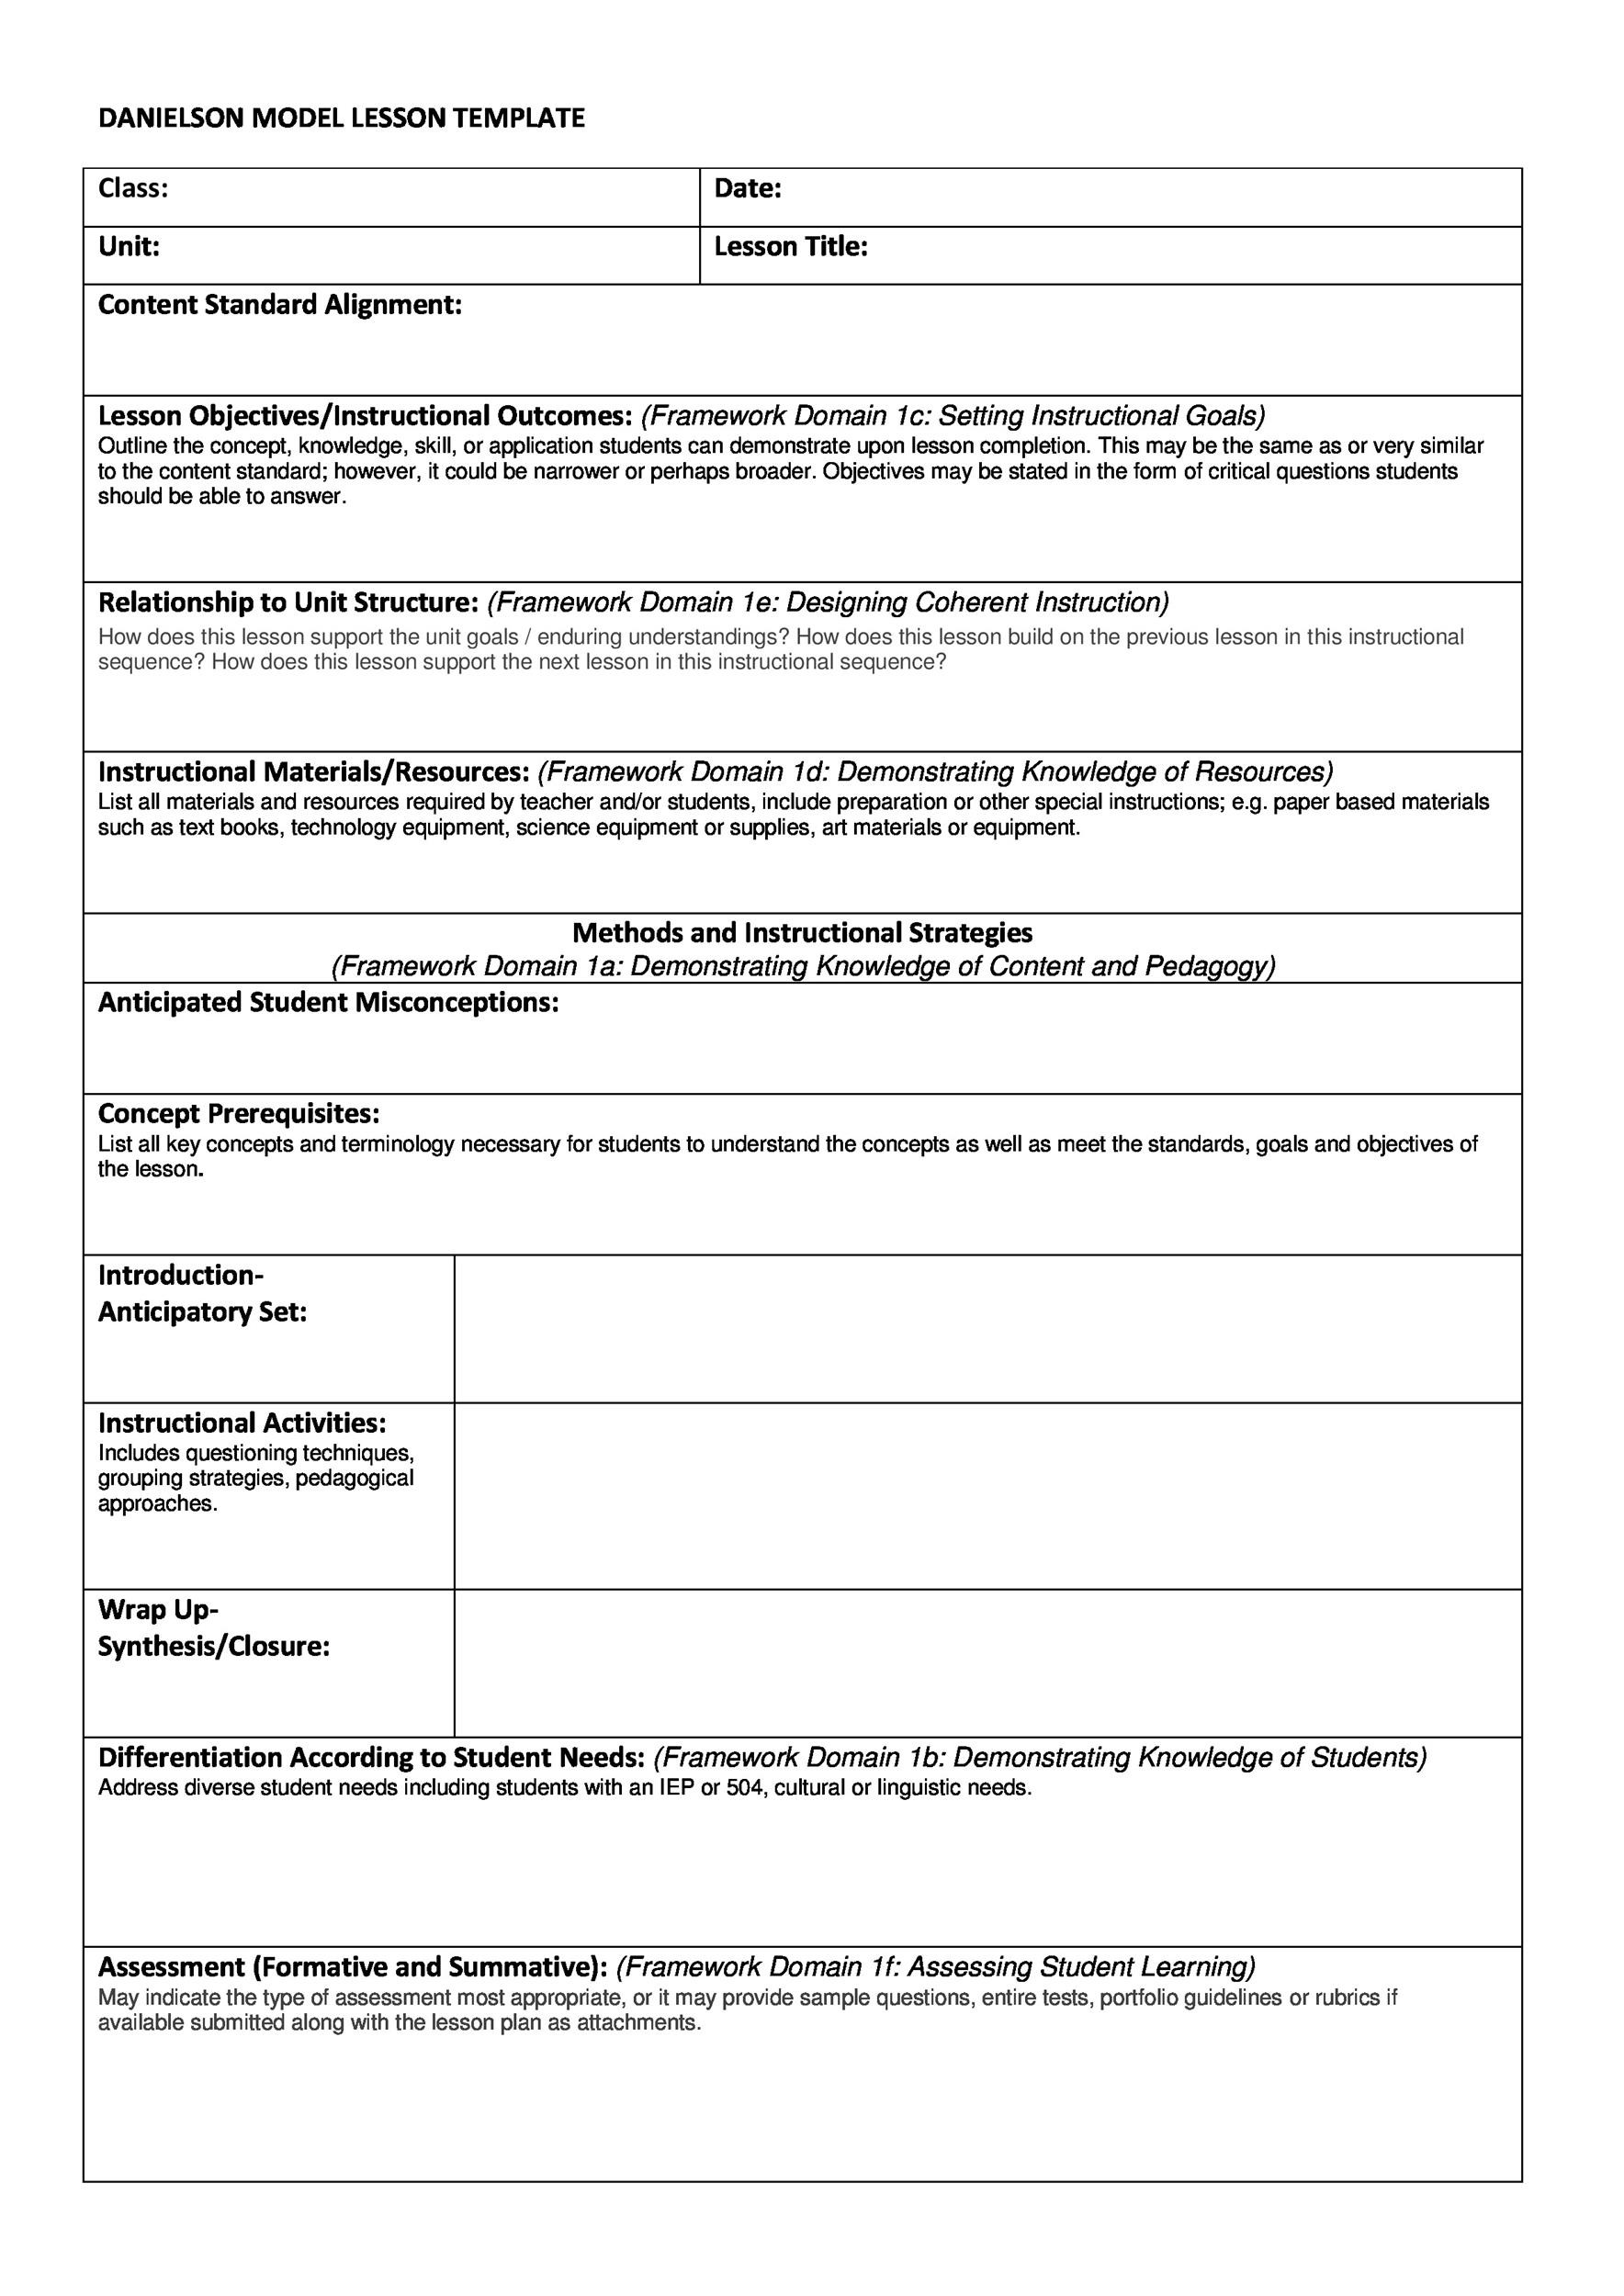 44 free lesson plan templates common core preschool weekly for Teachers college lesson plan template